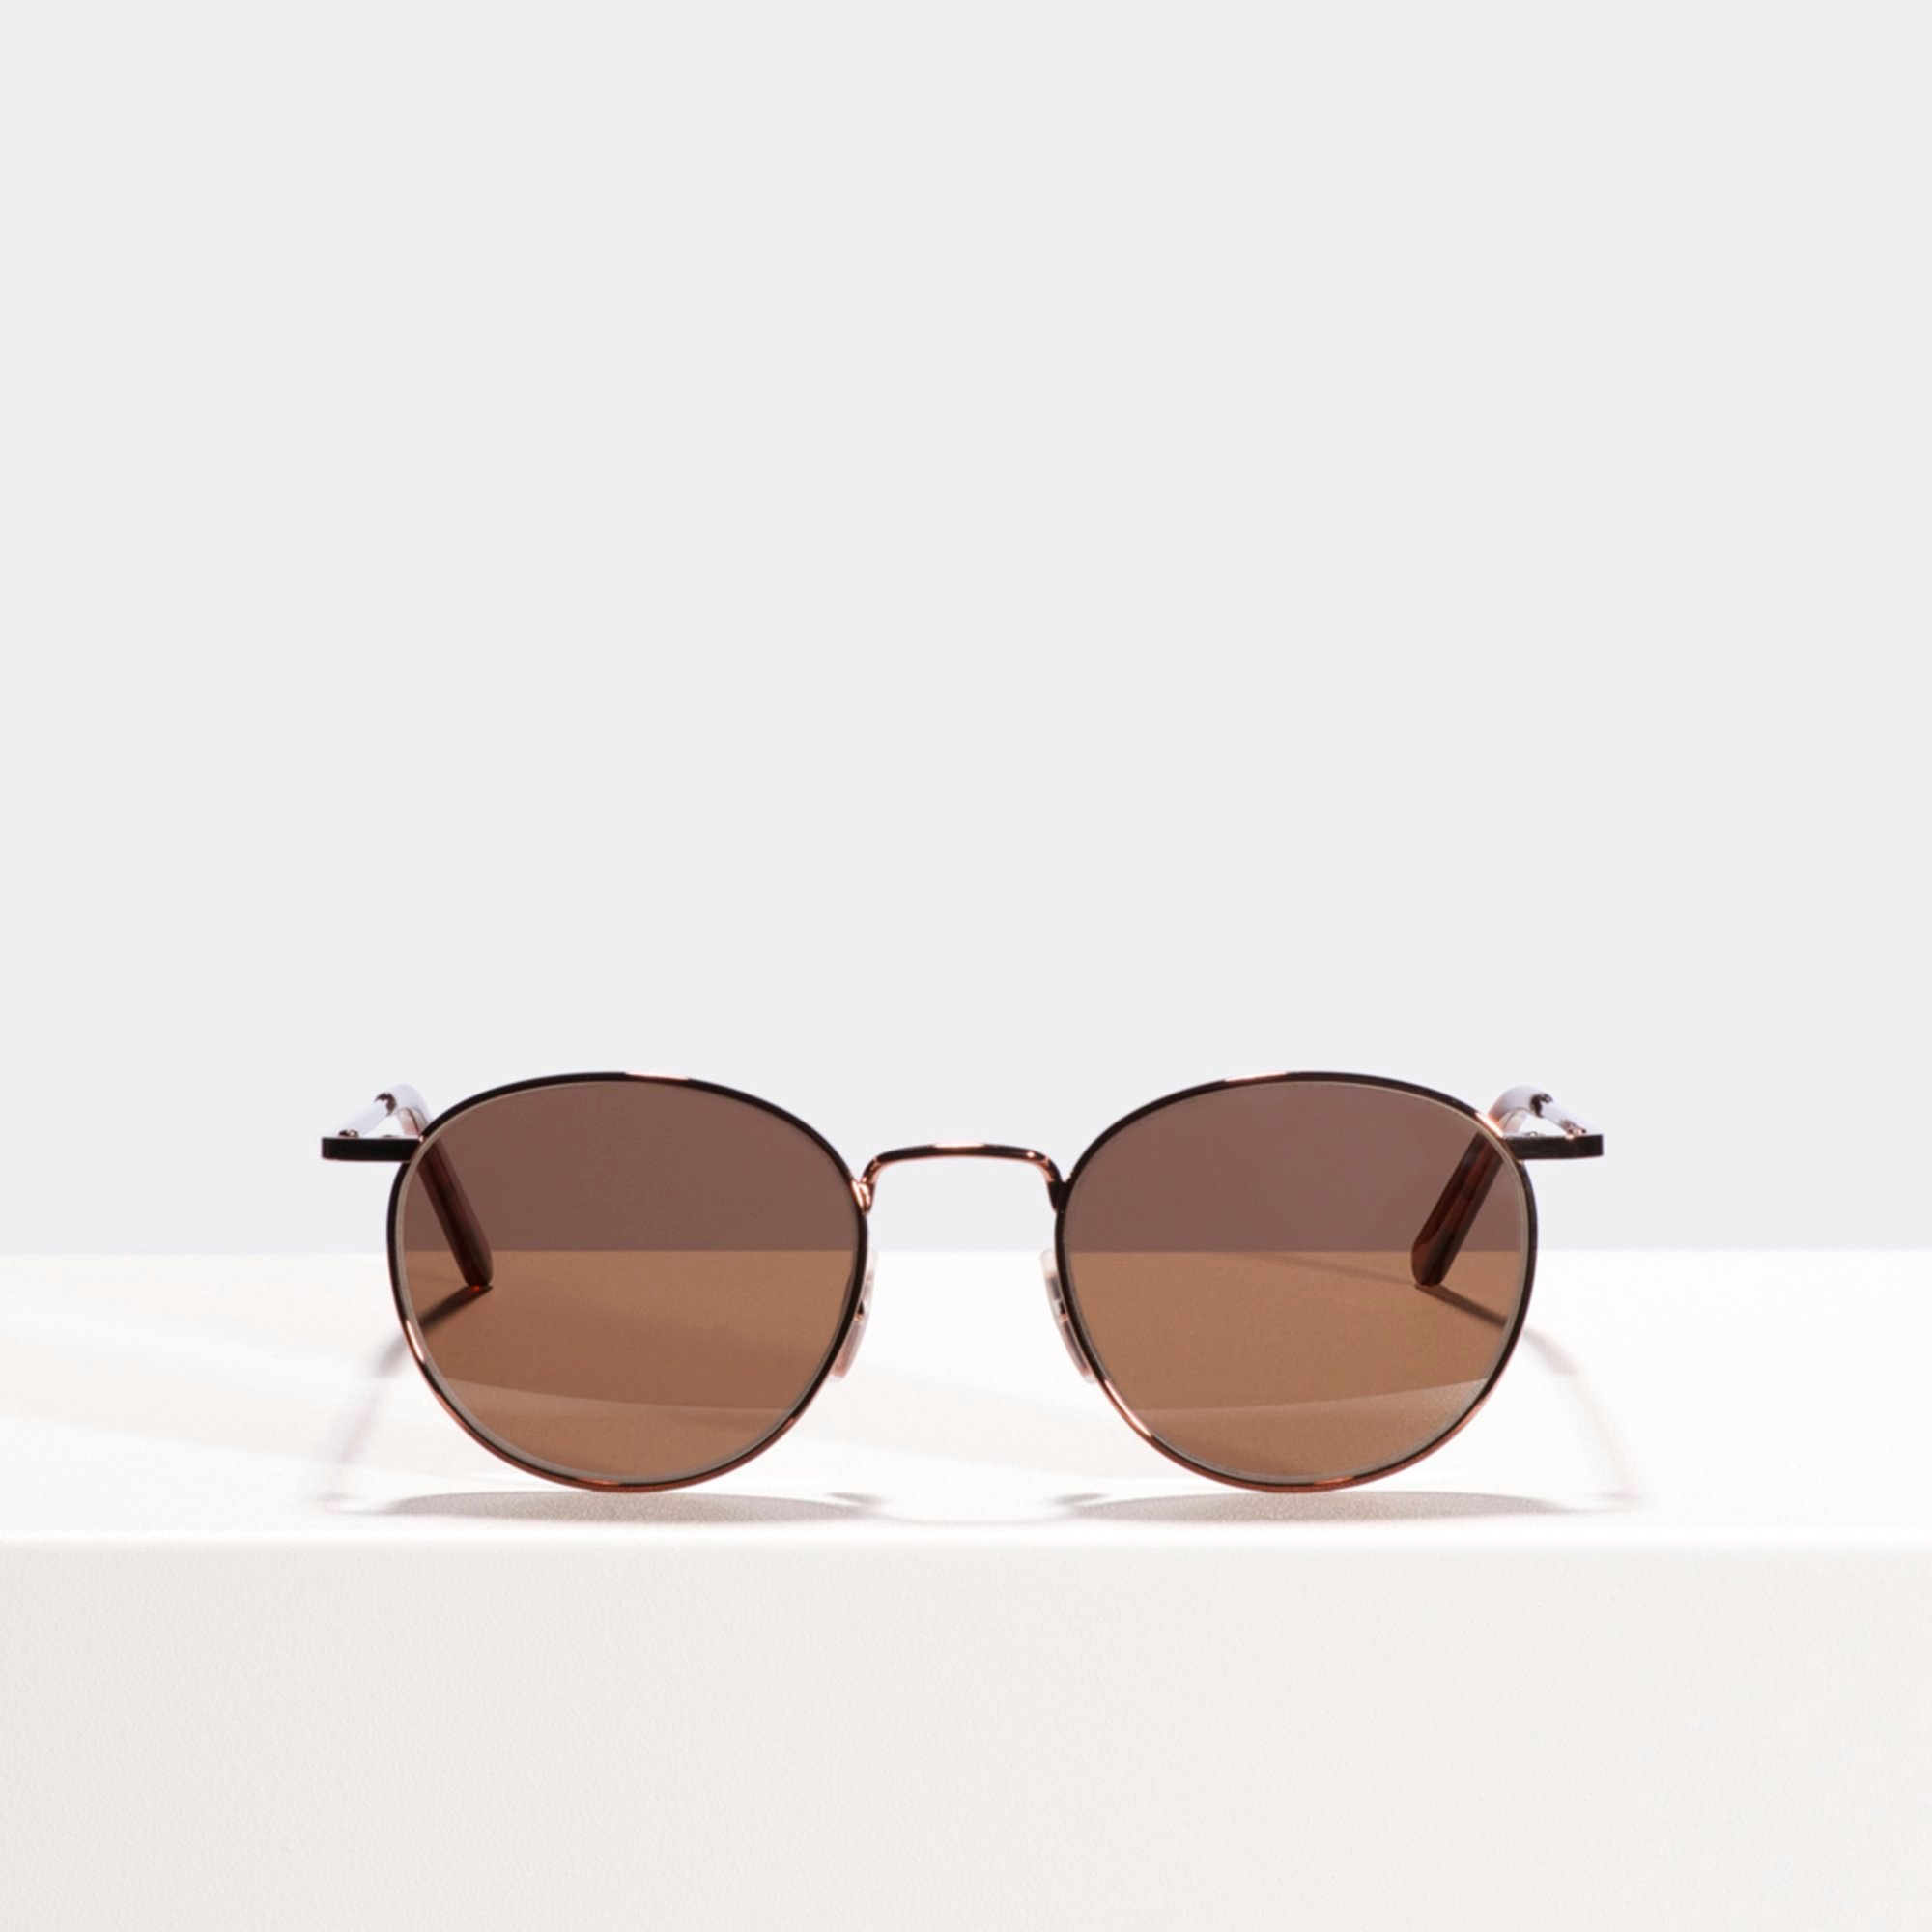 Ace & Tate Sunglasses | round metal in Red, Brown